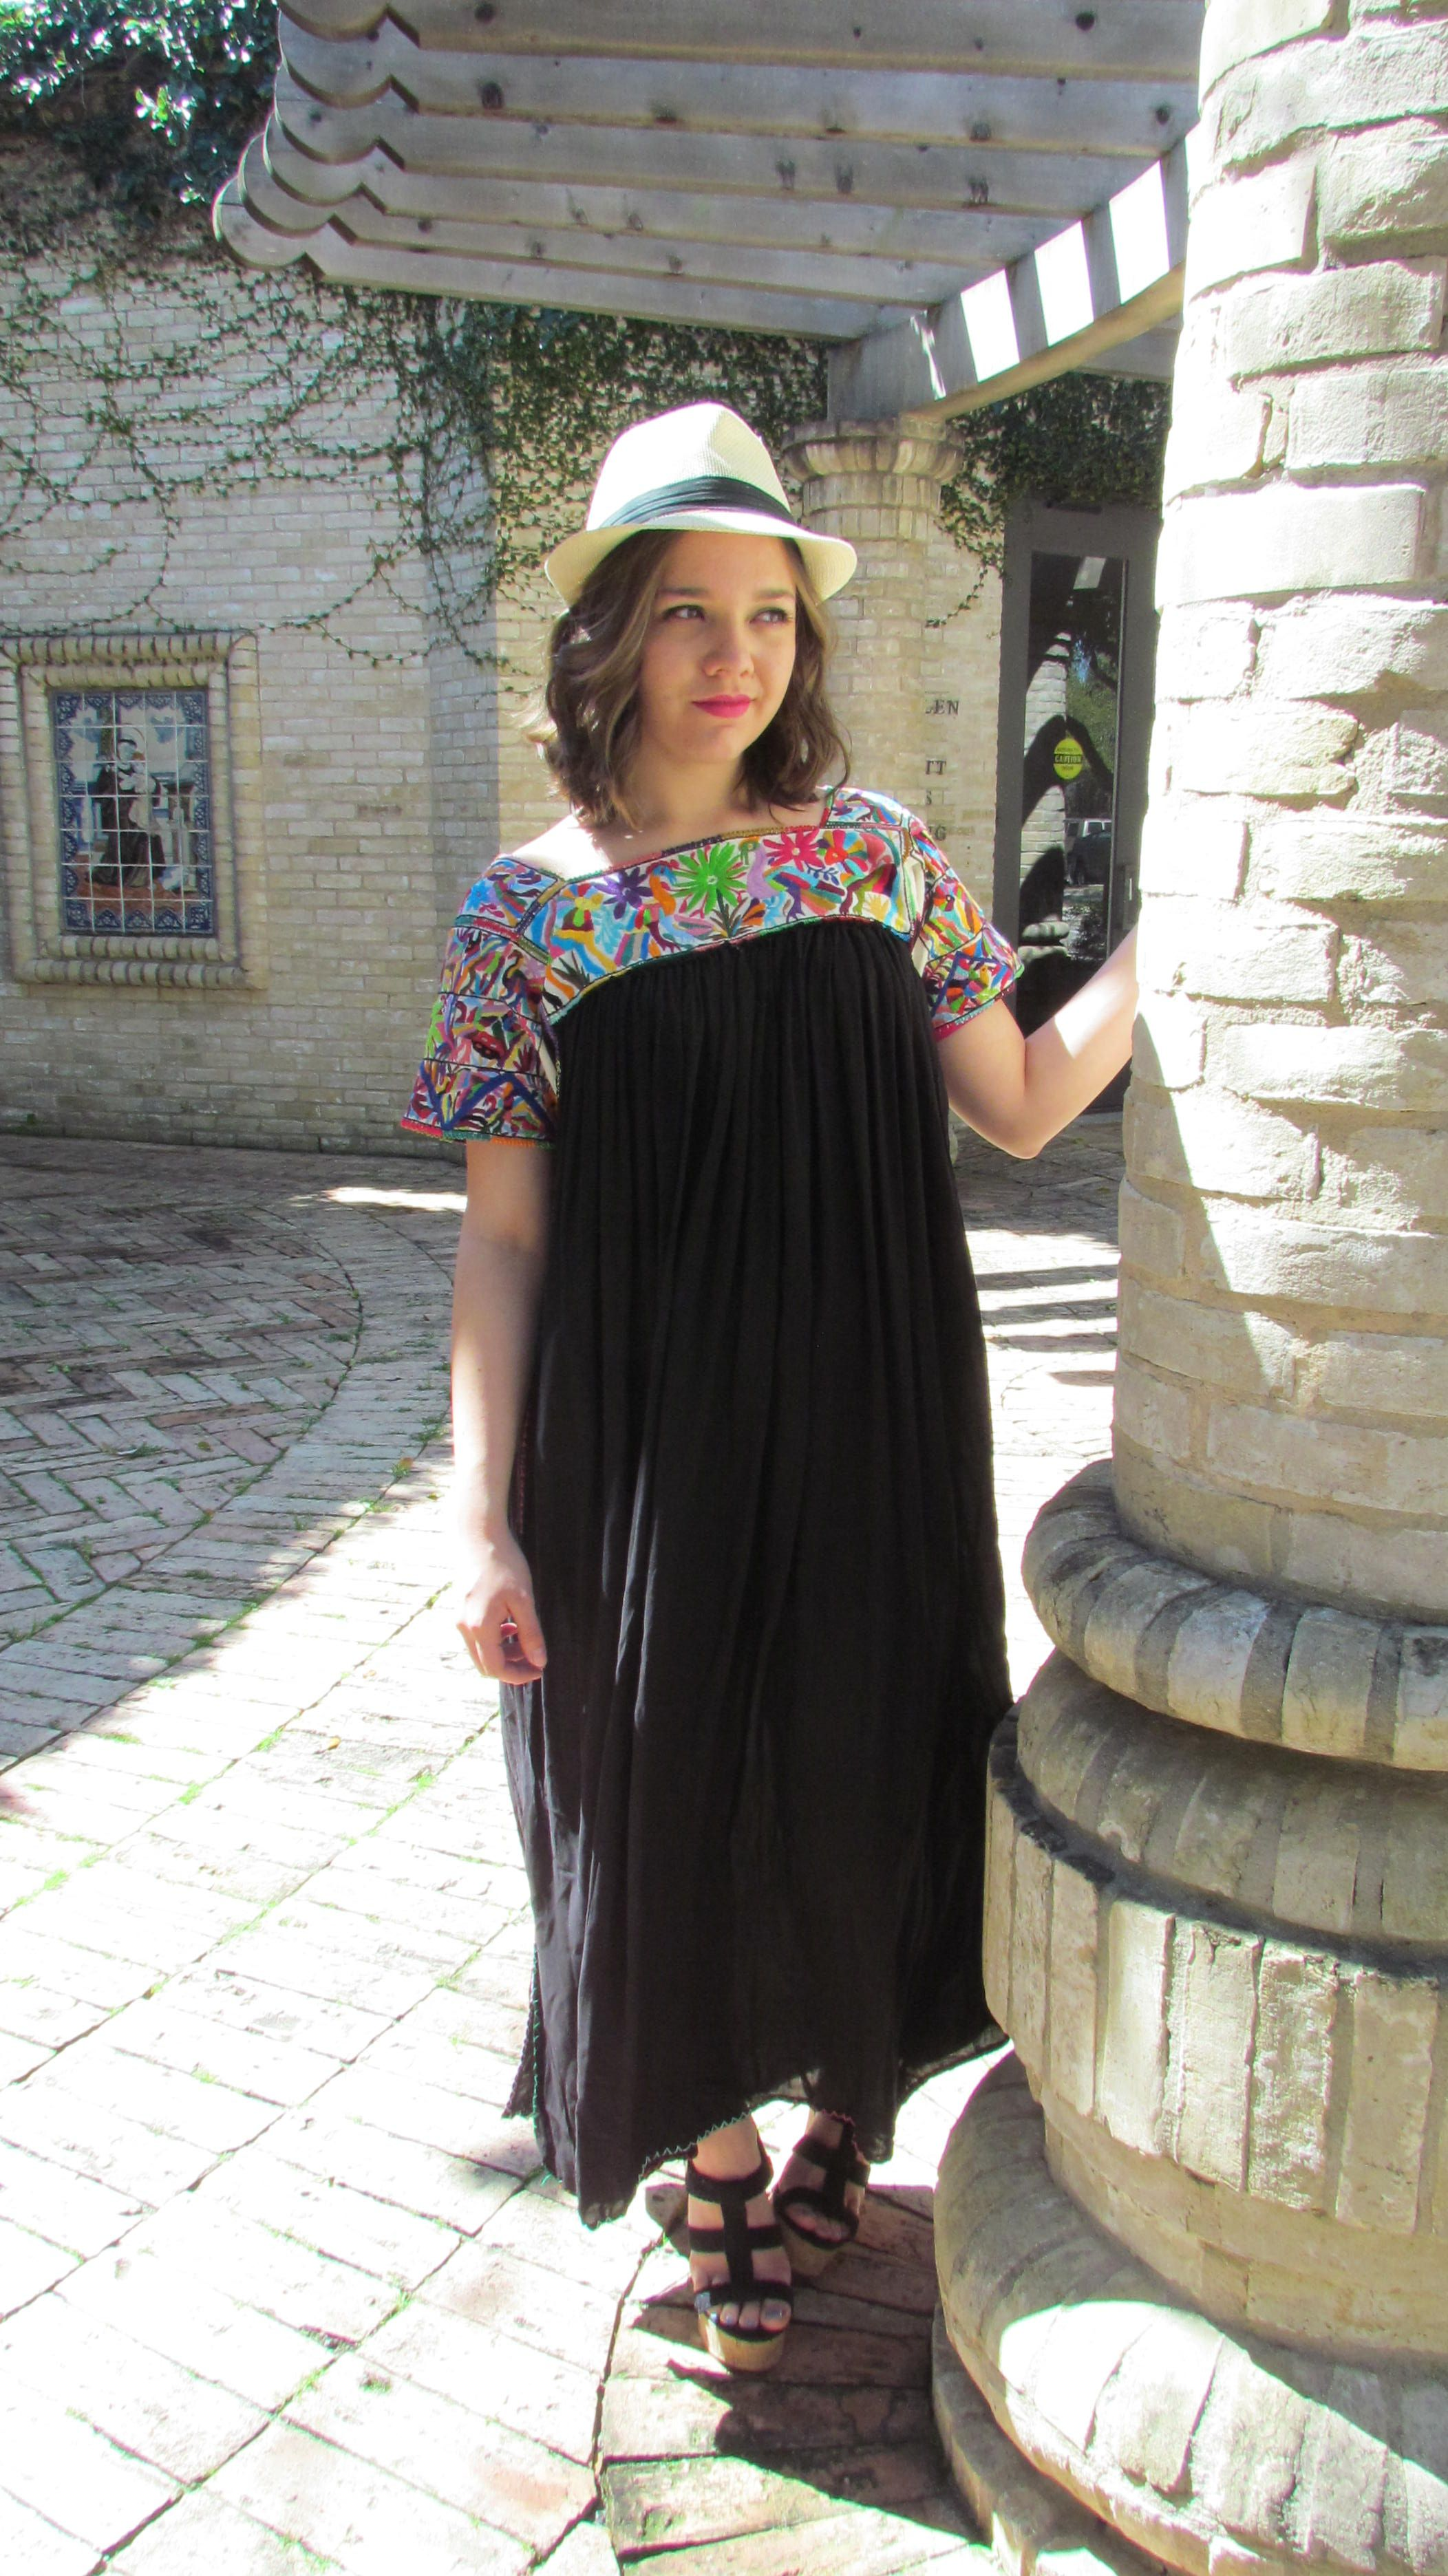 bfdfa8393adb Nativa one of a kind mexican summer dress thats hand embroidered jpg  2104x3744 Mexican summer dresses